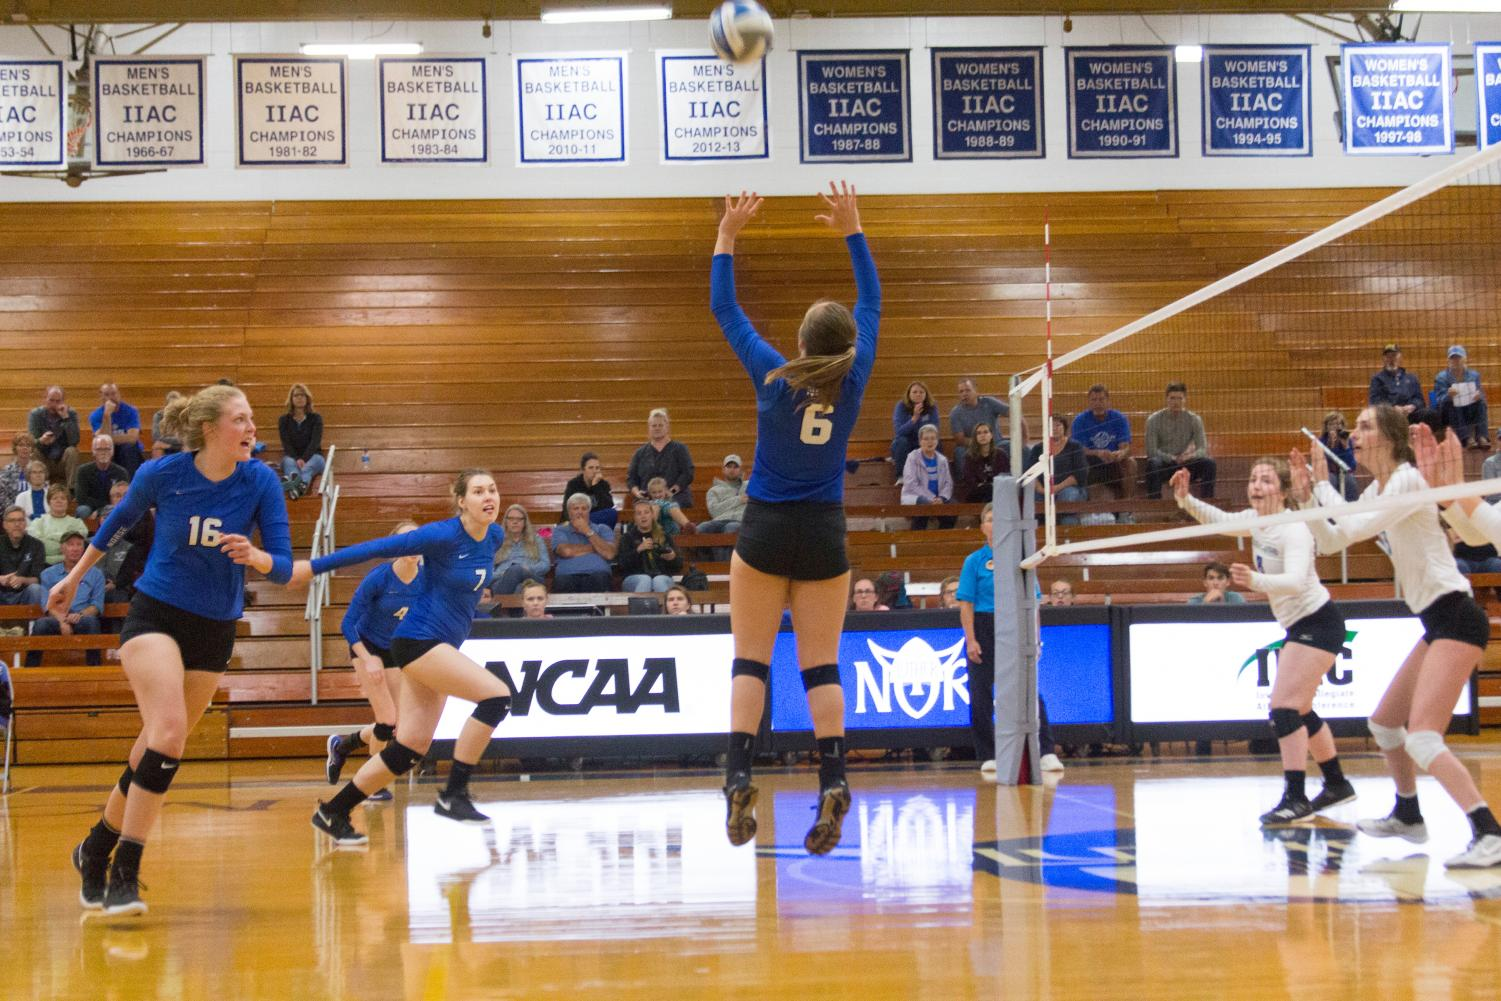 [LEFT TO RIGHT] Brooke Greenwood ('20), Emma Veum ('19), and Sam Sixta ('20) in a match against the University of Dubuque on Sept. 25.